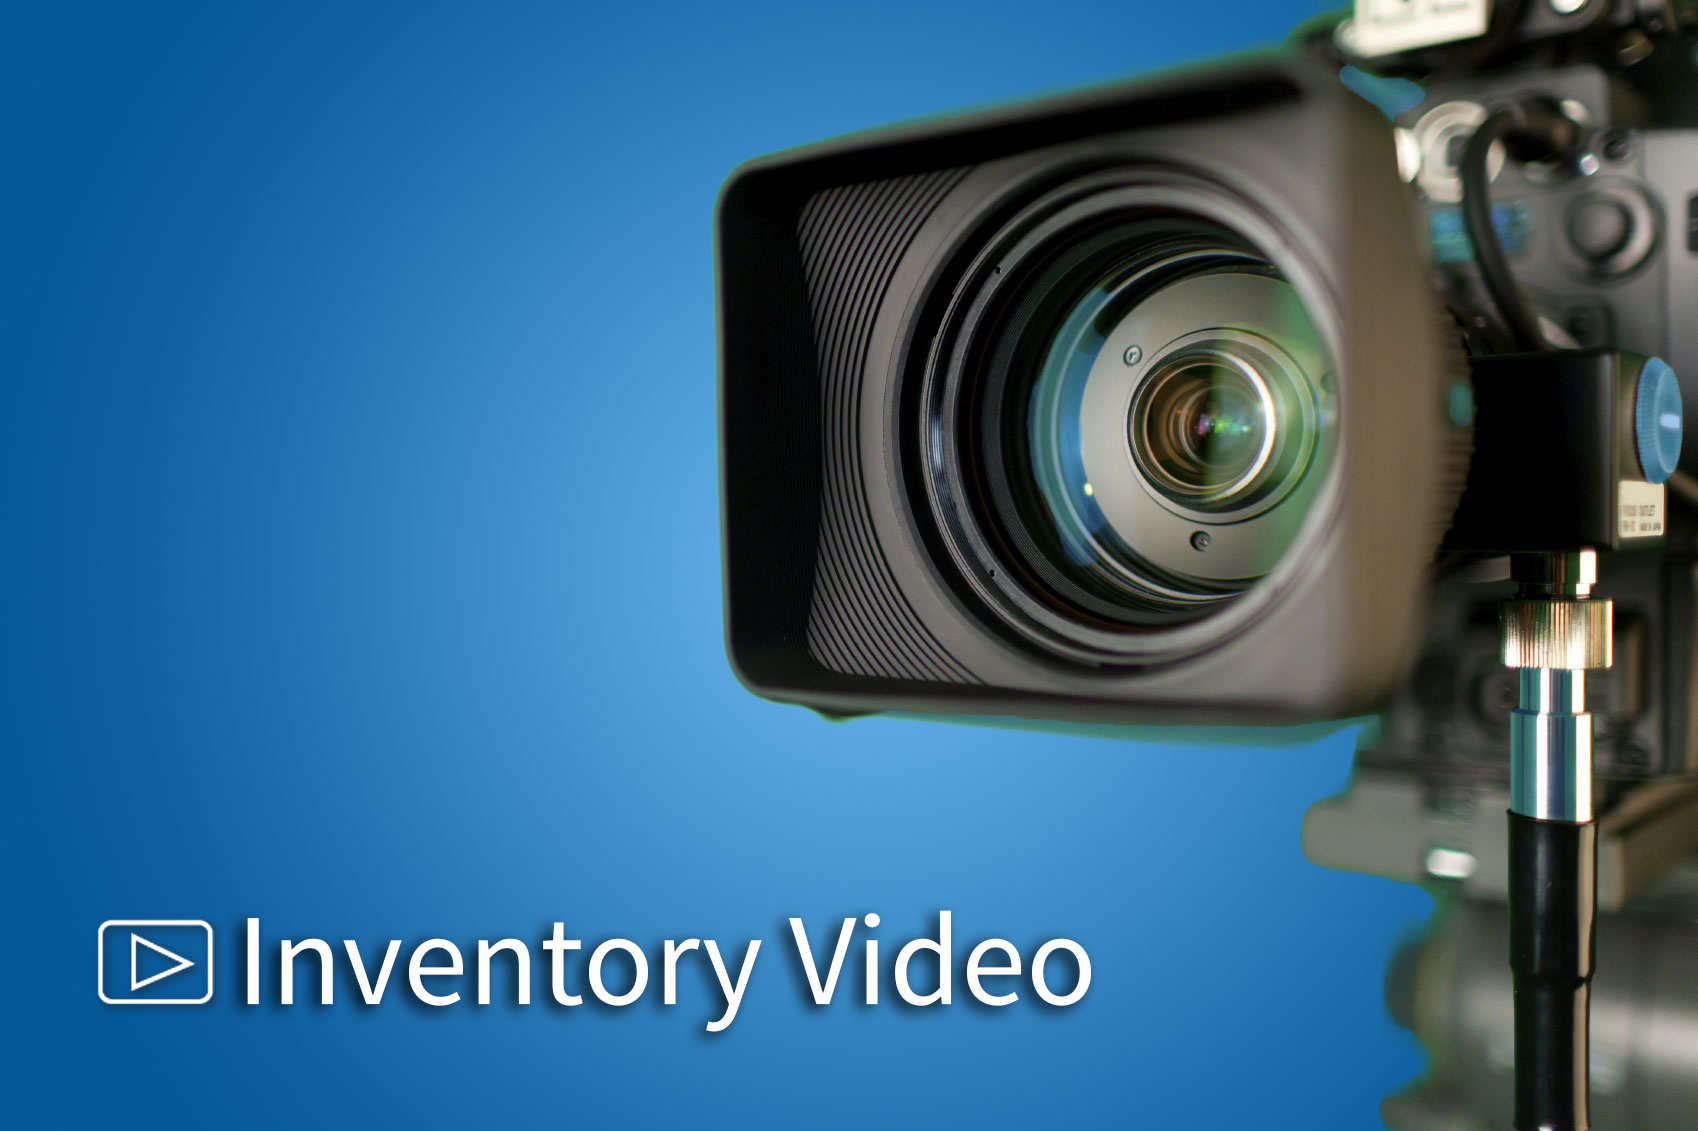 Inventory Video